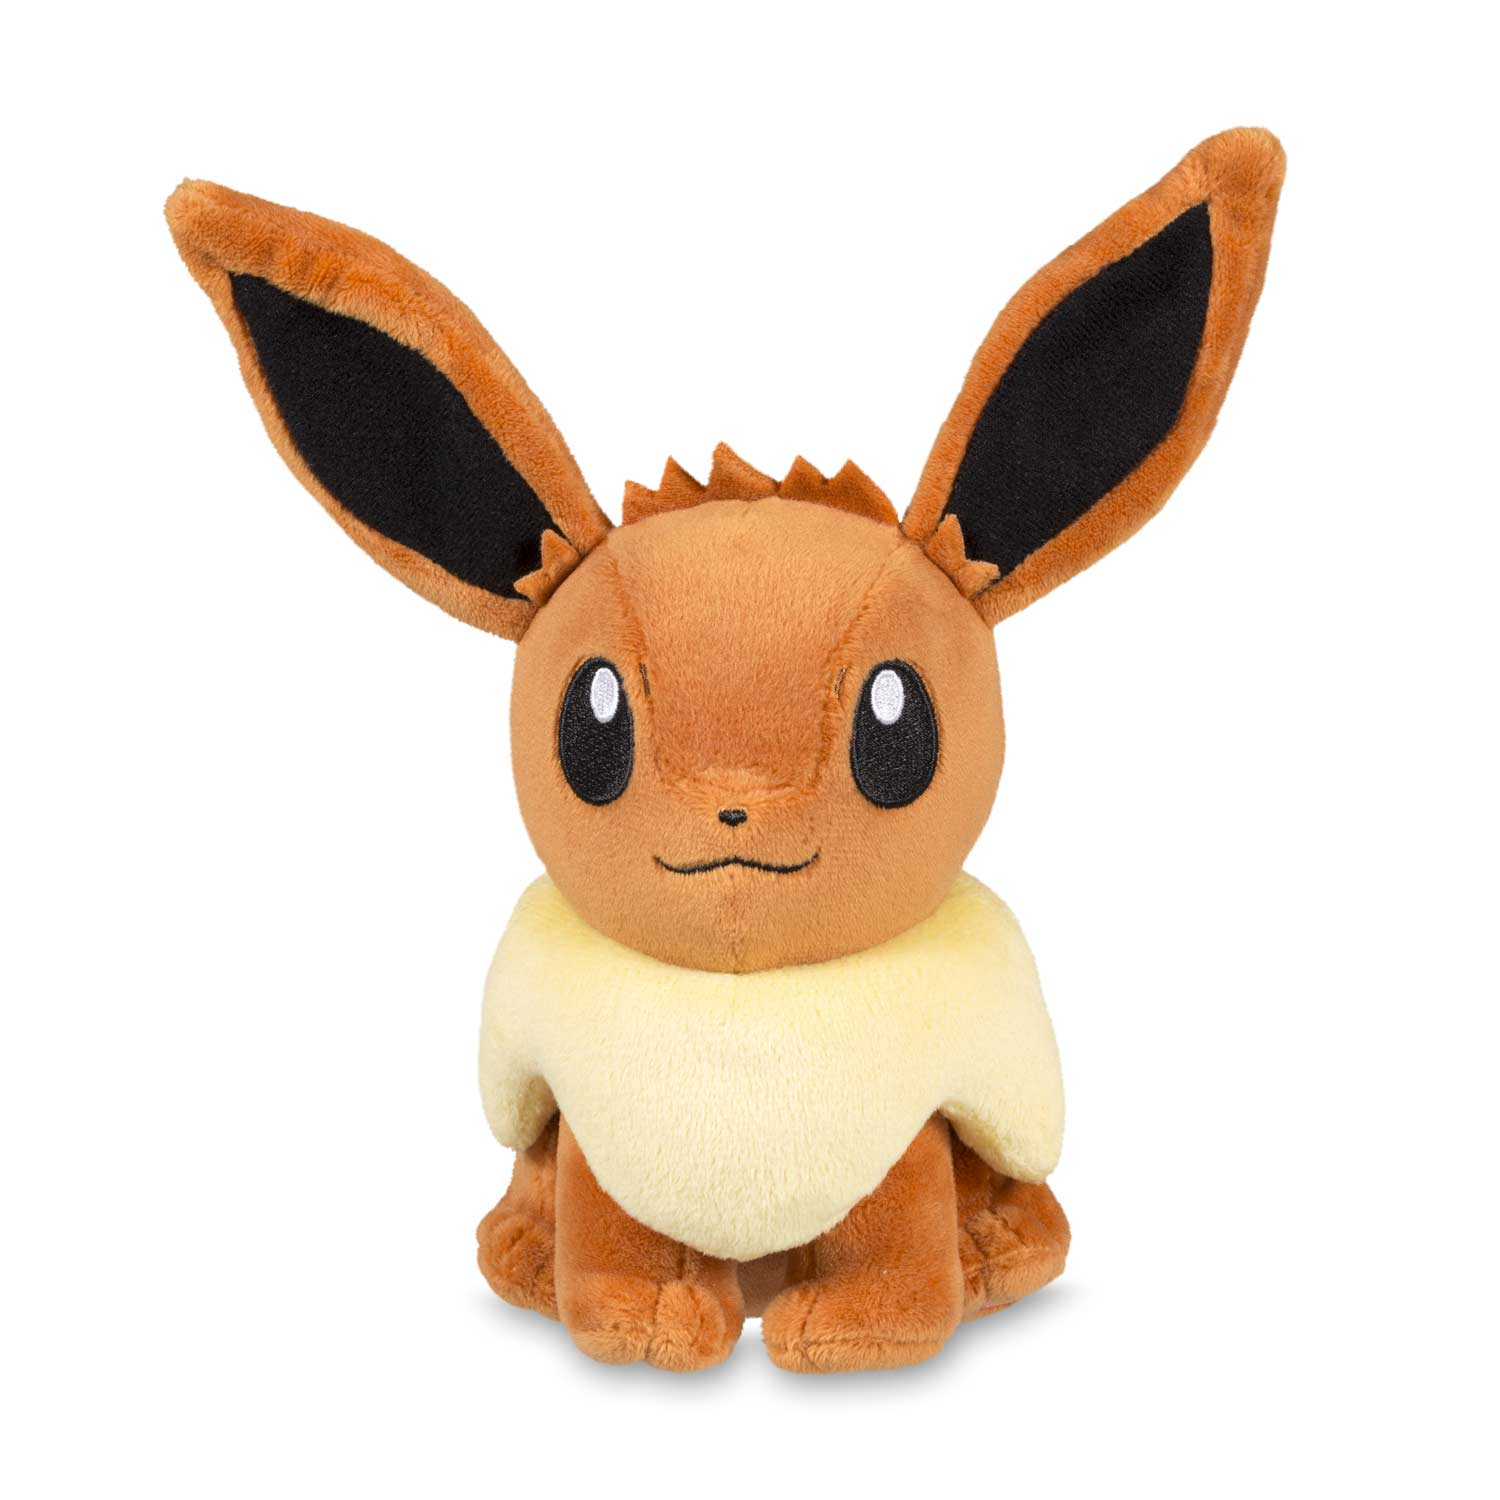 Cute Pokemon Plush Toys Evolution of Eevee Stuffed Animal Doll Collection Gifts